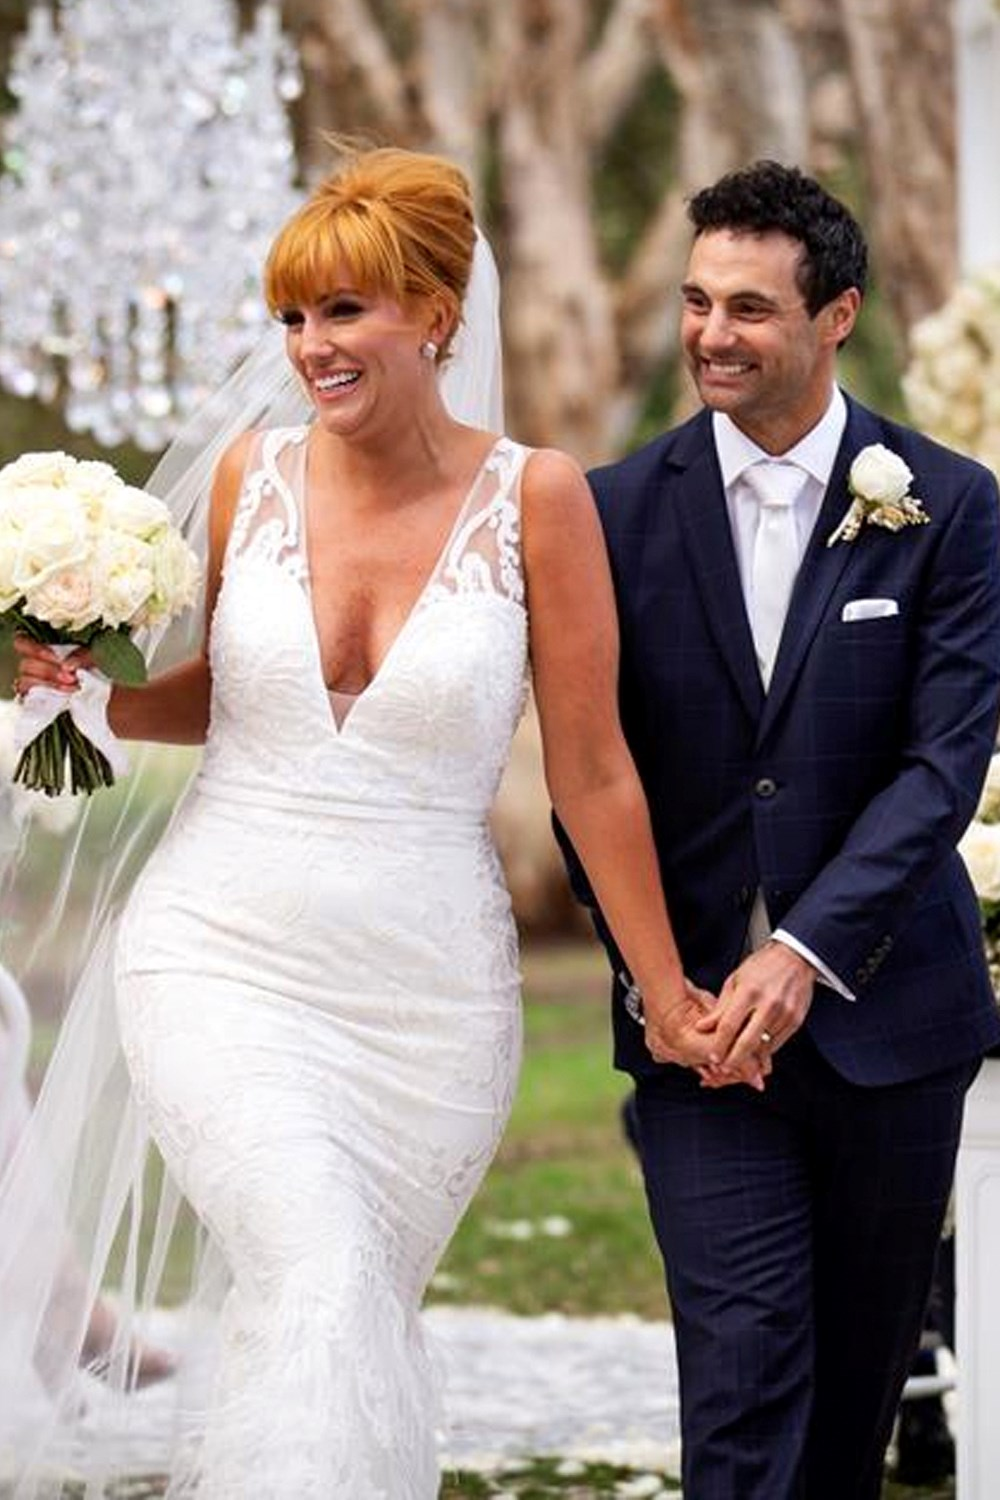 jules and cam wedding - photo #10